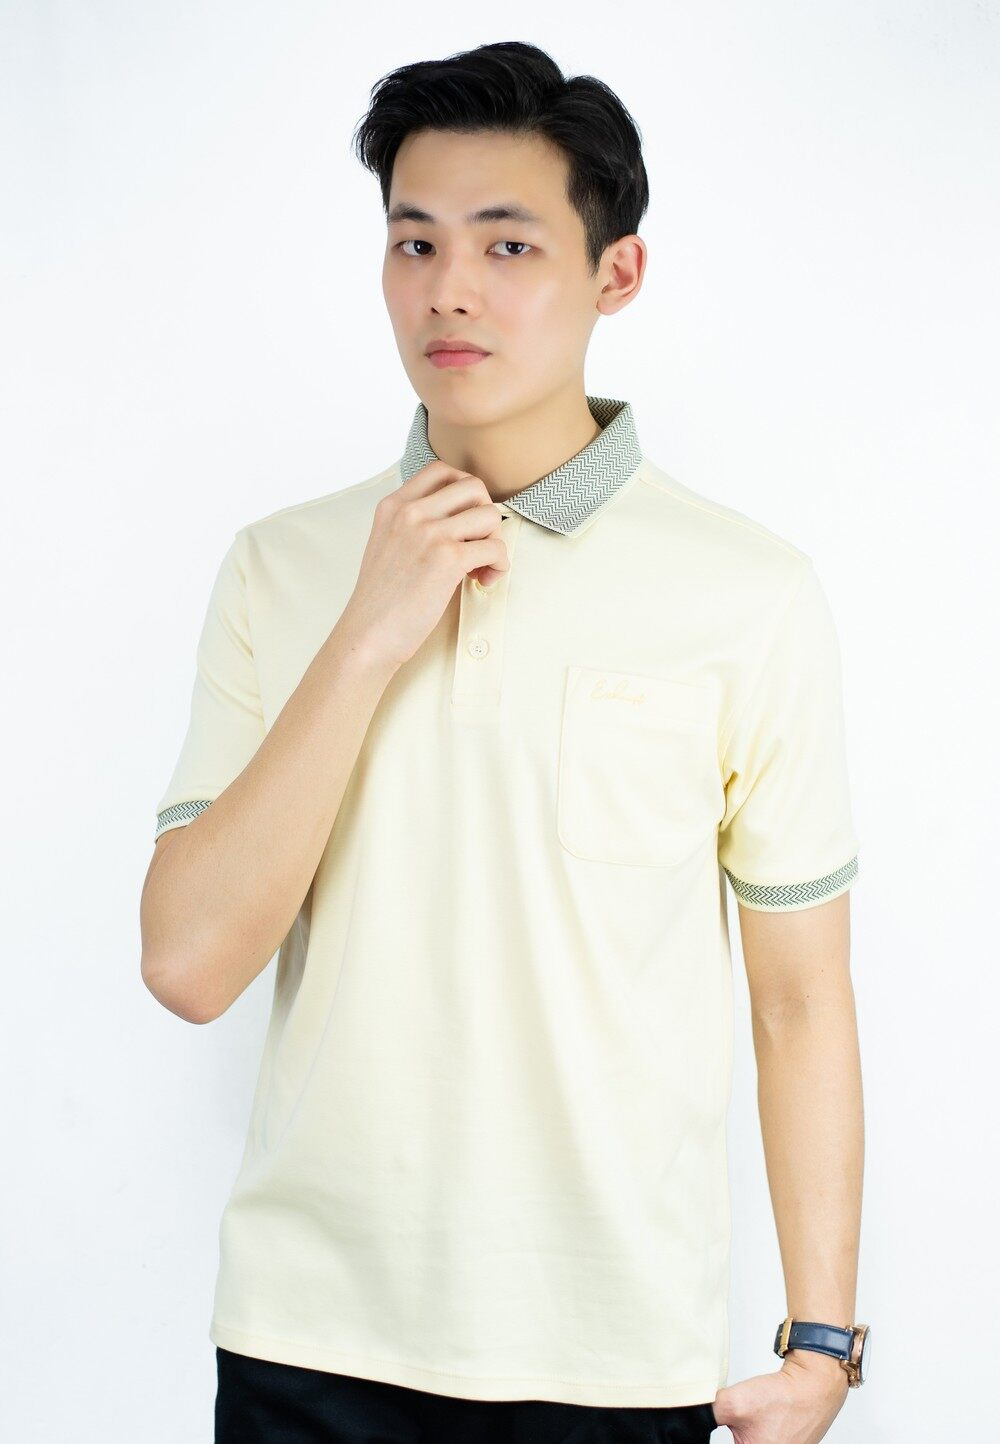 Polo Tee with Chevron Collar and Pocket with Embroidery